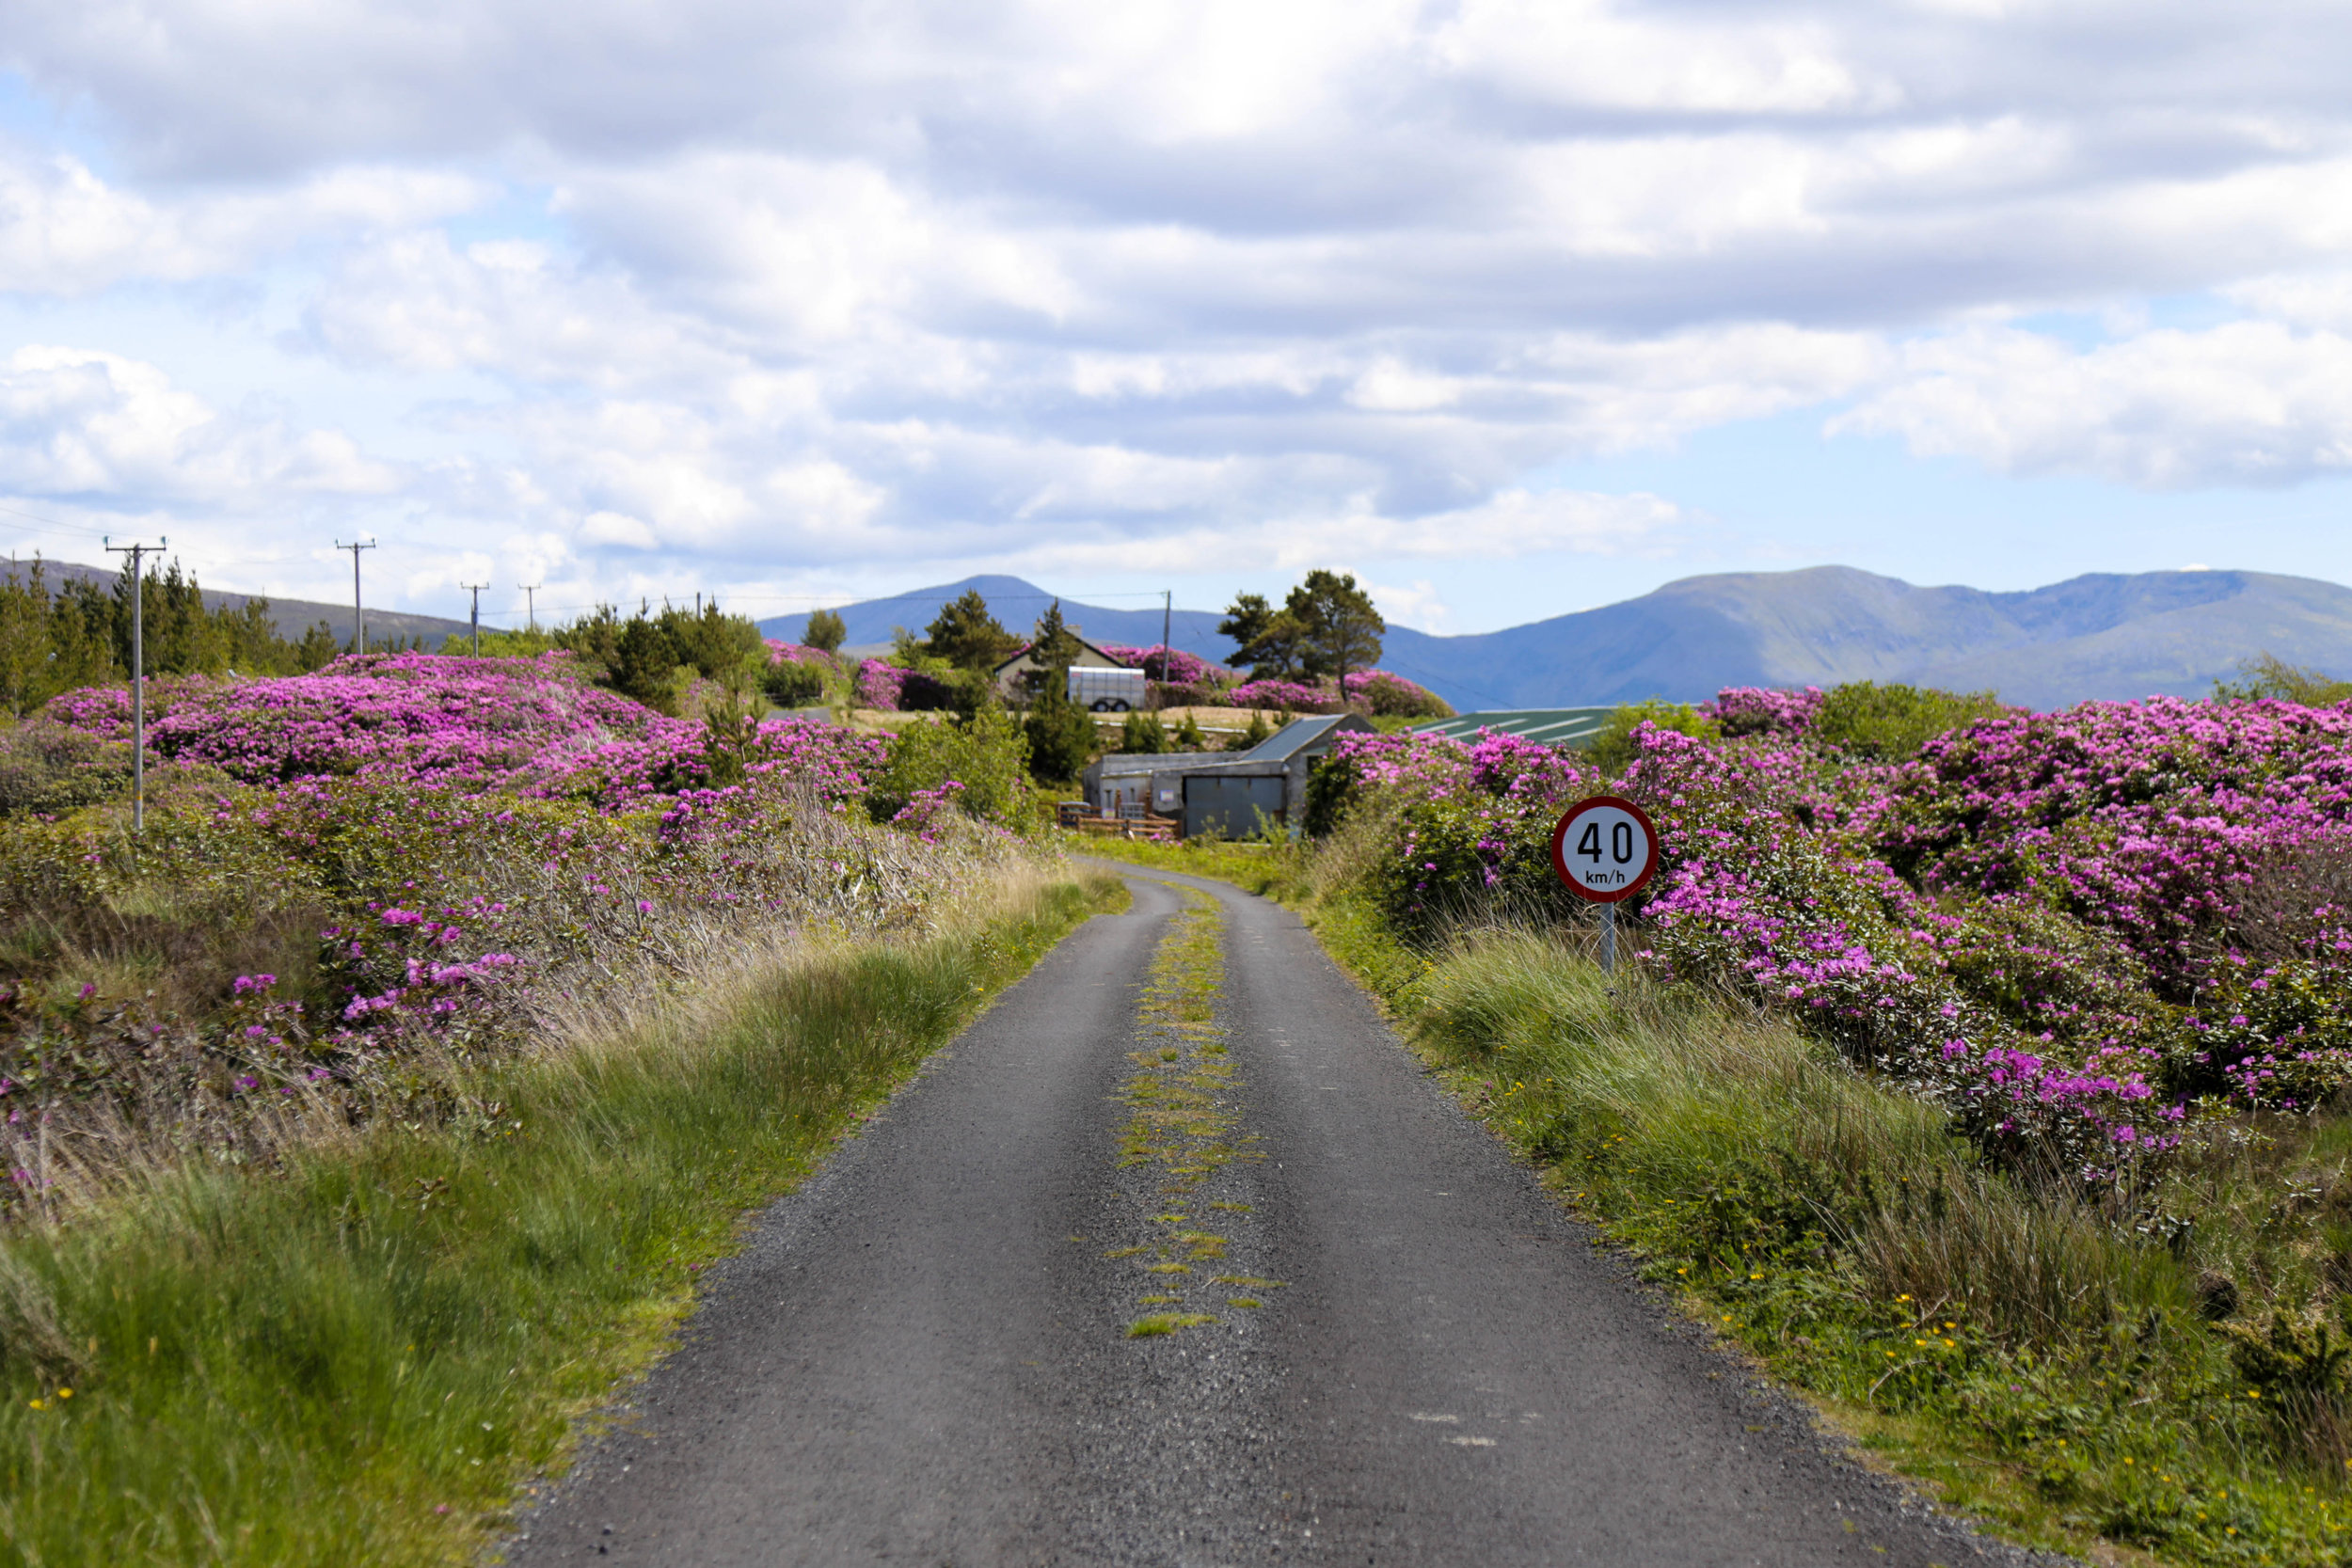 Most worryingly, Rhododendron now covers great swathes of our National Parks, lands which were granted special protections because of their ecological importance. Here Rhododendron can be seen both sides of the driveway to Wildlife Rangers head office in National Park at Ballycroy in North Mayo.